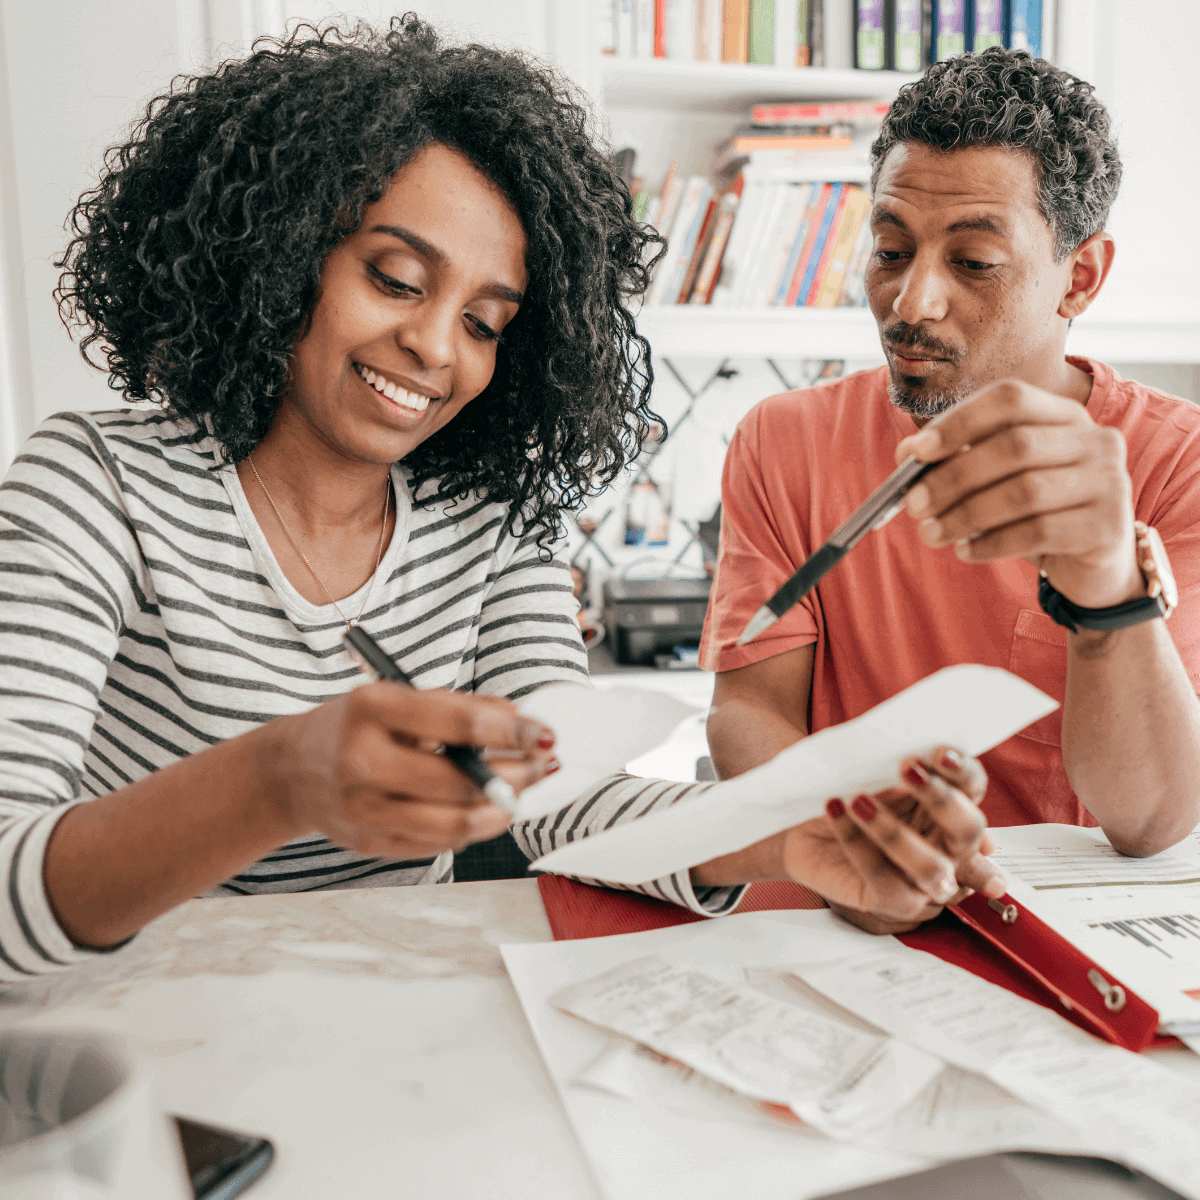 When Can I File my 2020 Taxes in Canada?